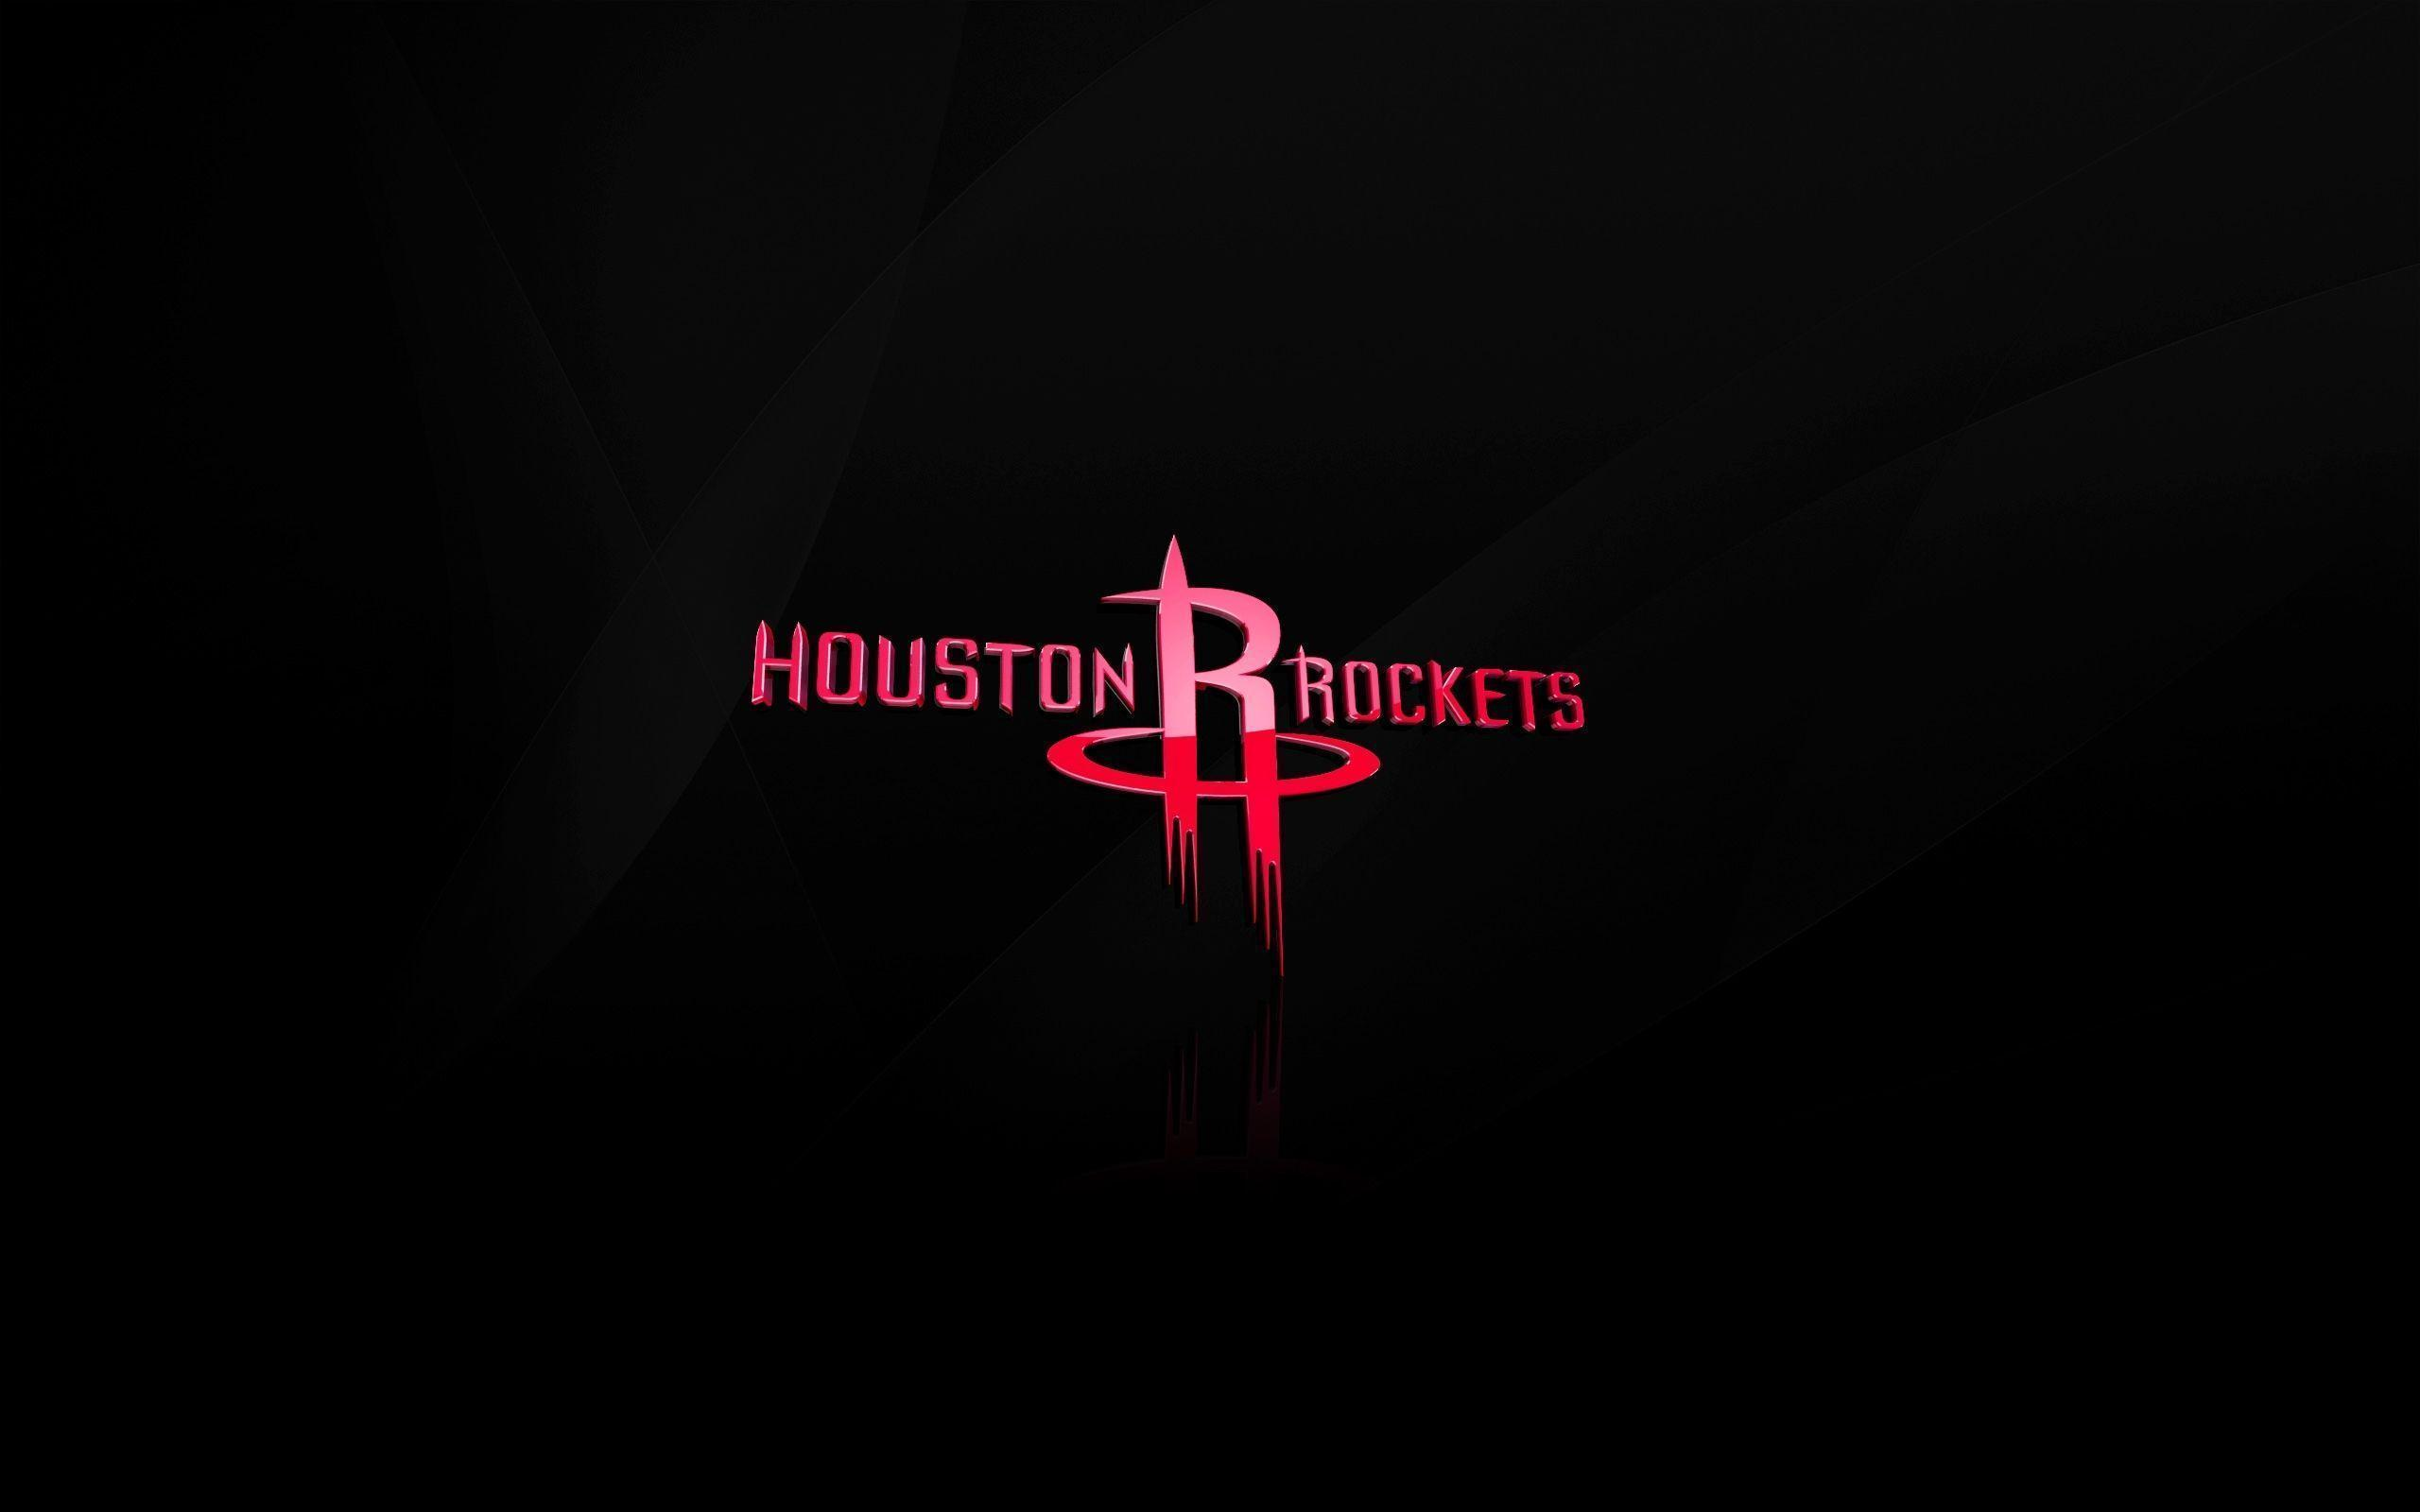 Houston Rockets Wallpapers HD